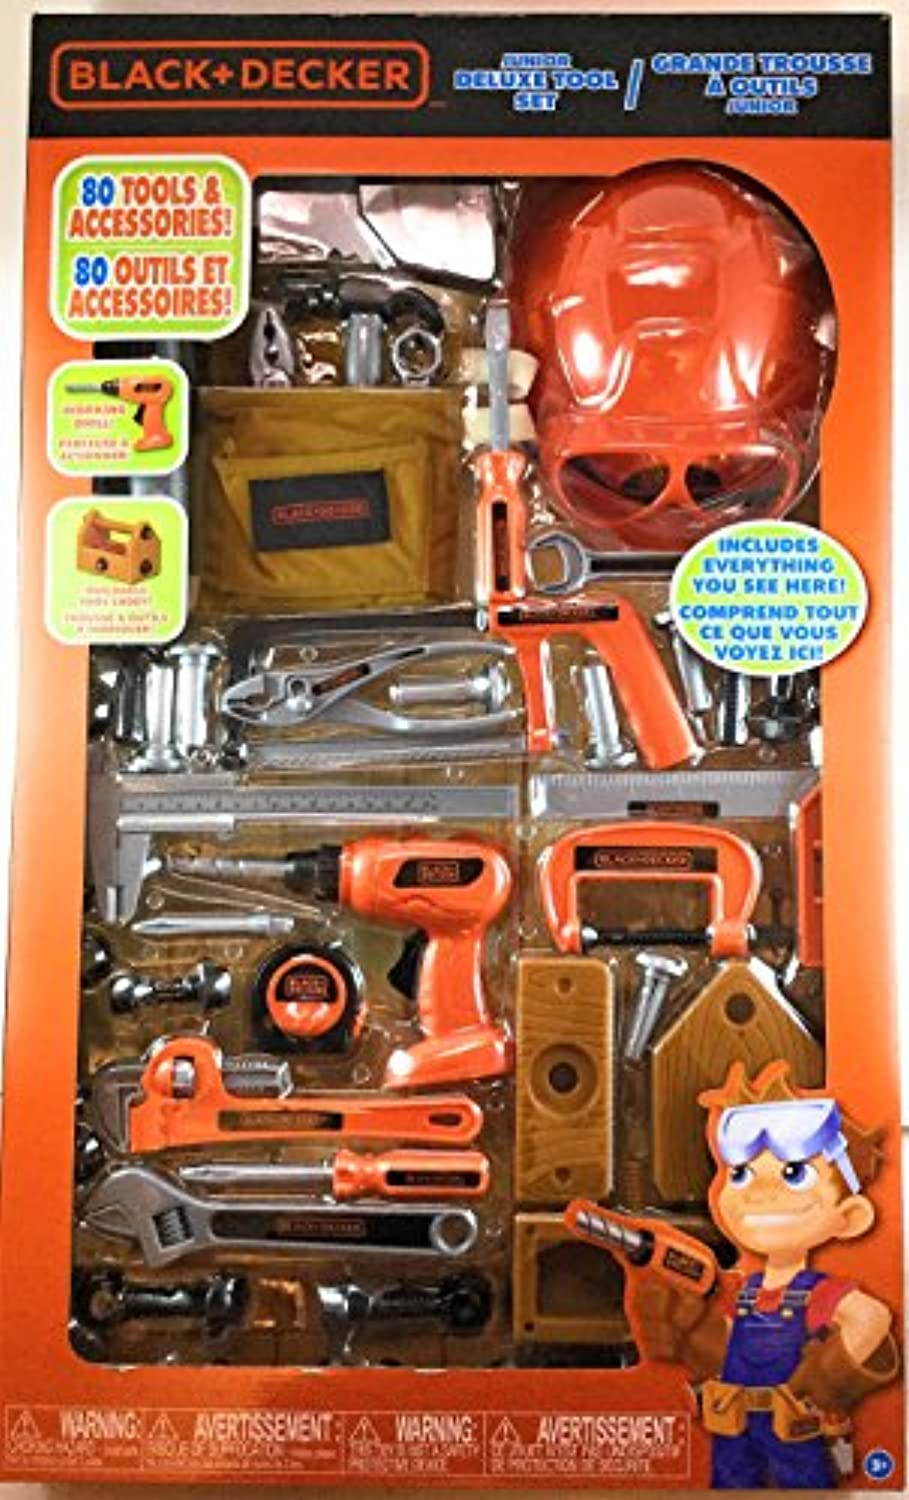 Black + Decker 80 Pieces Tools and Accessories Junior Deluxe Tool Set Kids Toys ブラックアンドデッカー ジュニア ツールセット 80ピース